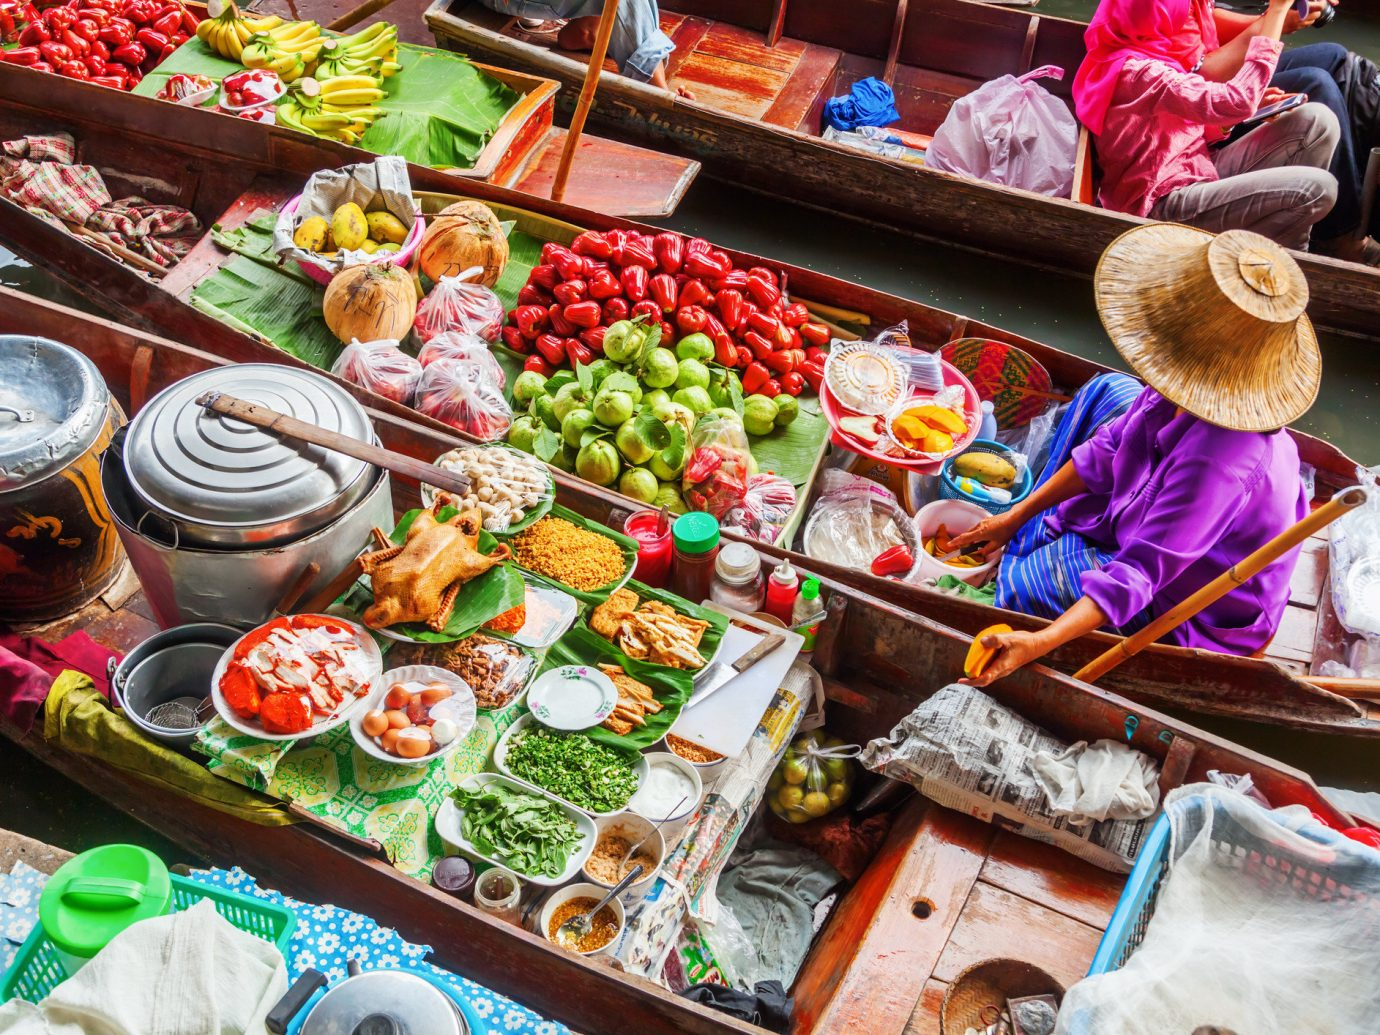 Trip Ideas color marketplace public space City market vendor food human settlement dish scene bazaar grocery store greengrocer street food cuisine sweetness asian food different several Shop